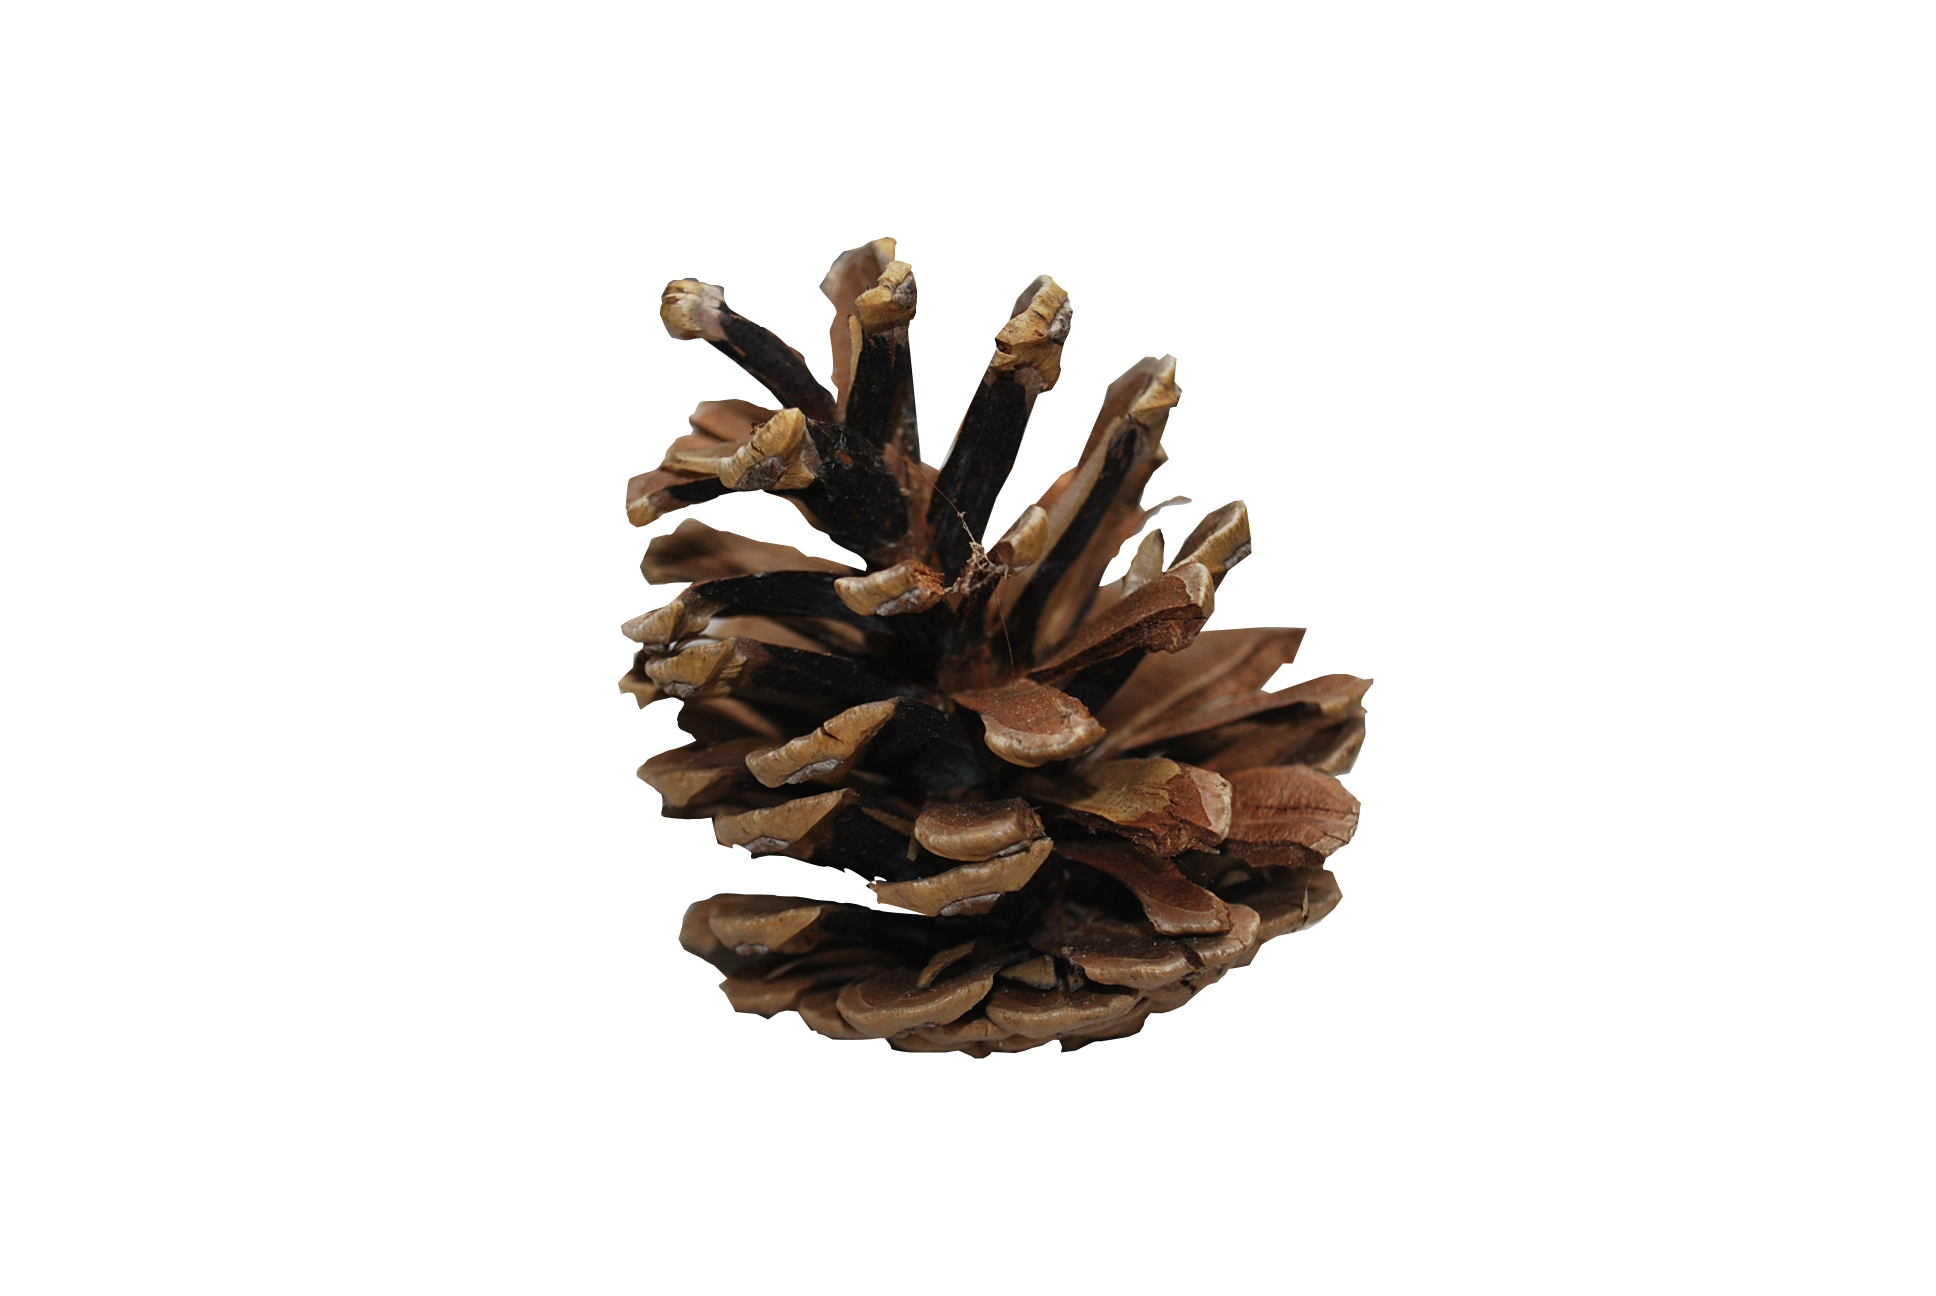 Pine cone PNG - Pinecone HD PNG